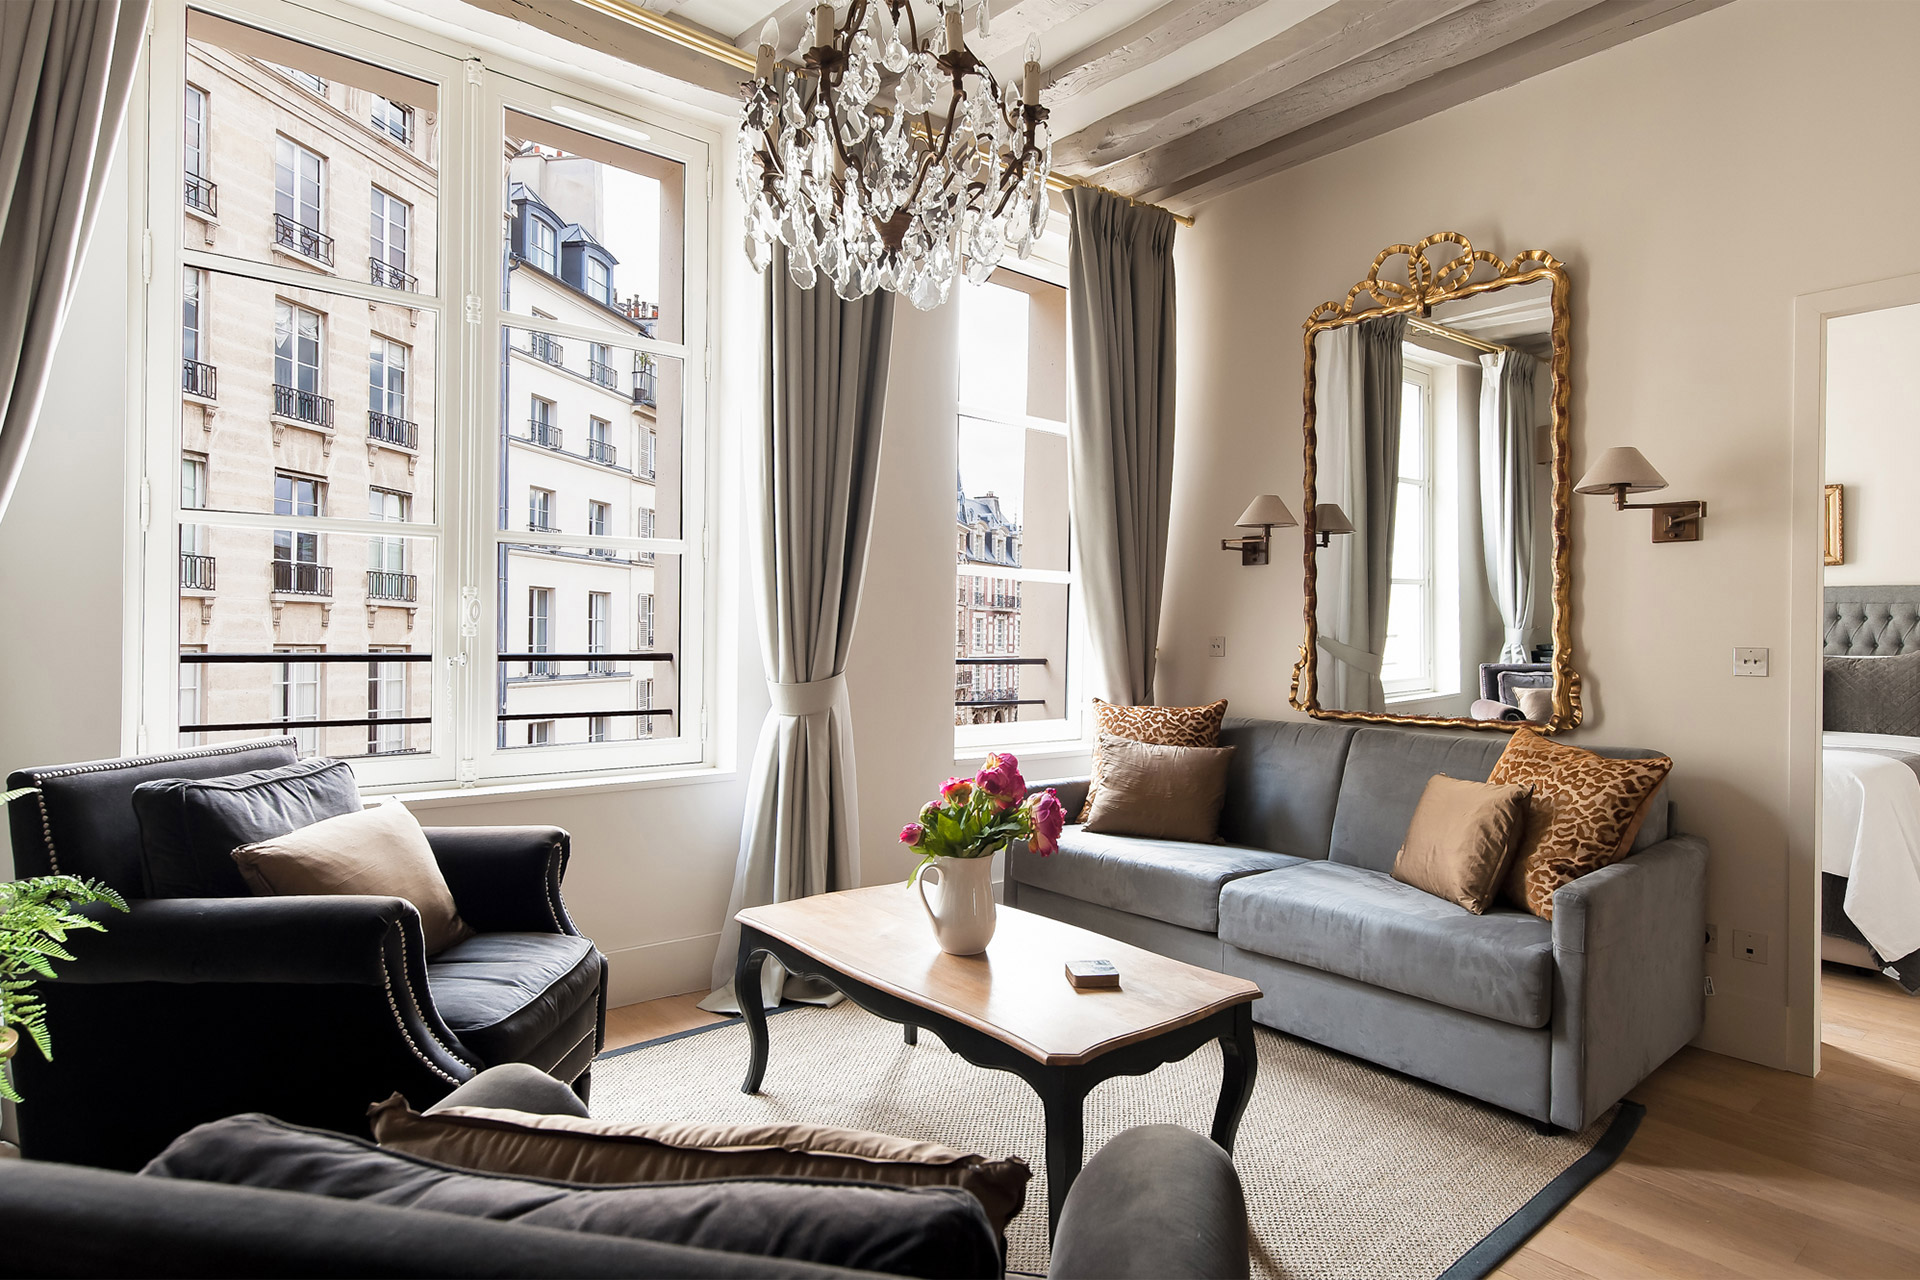 Place Dauphine One Bedroom Apartment Rental Paris Sale